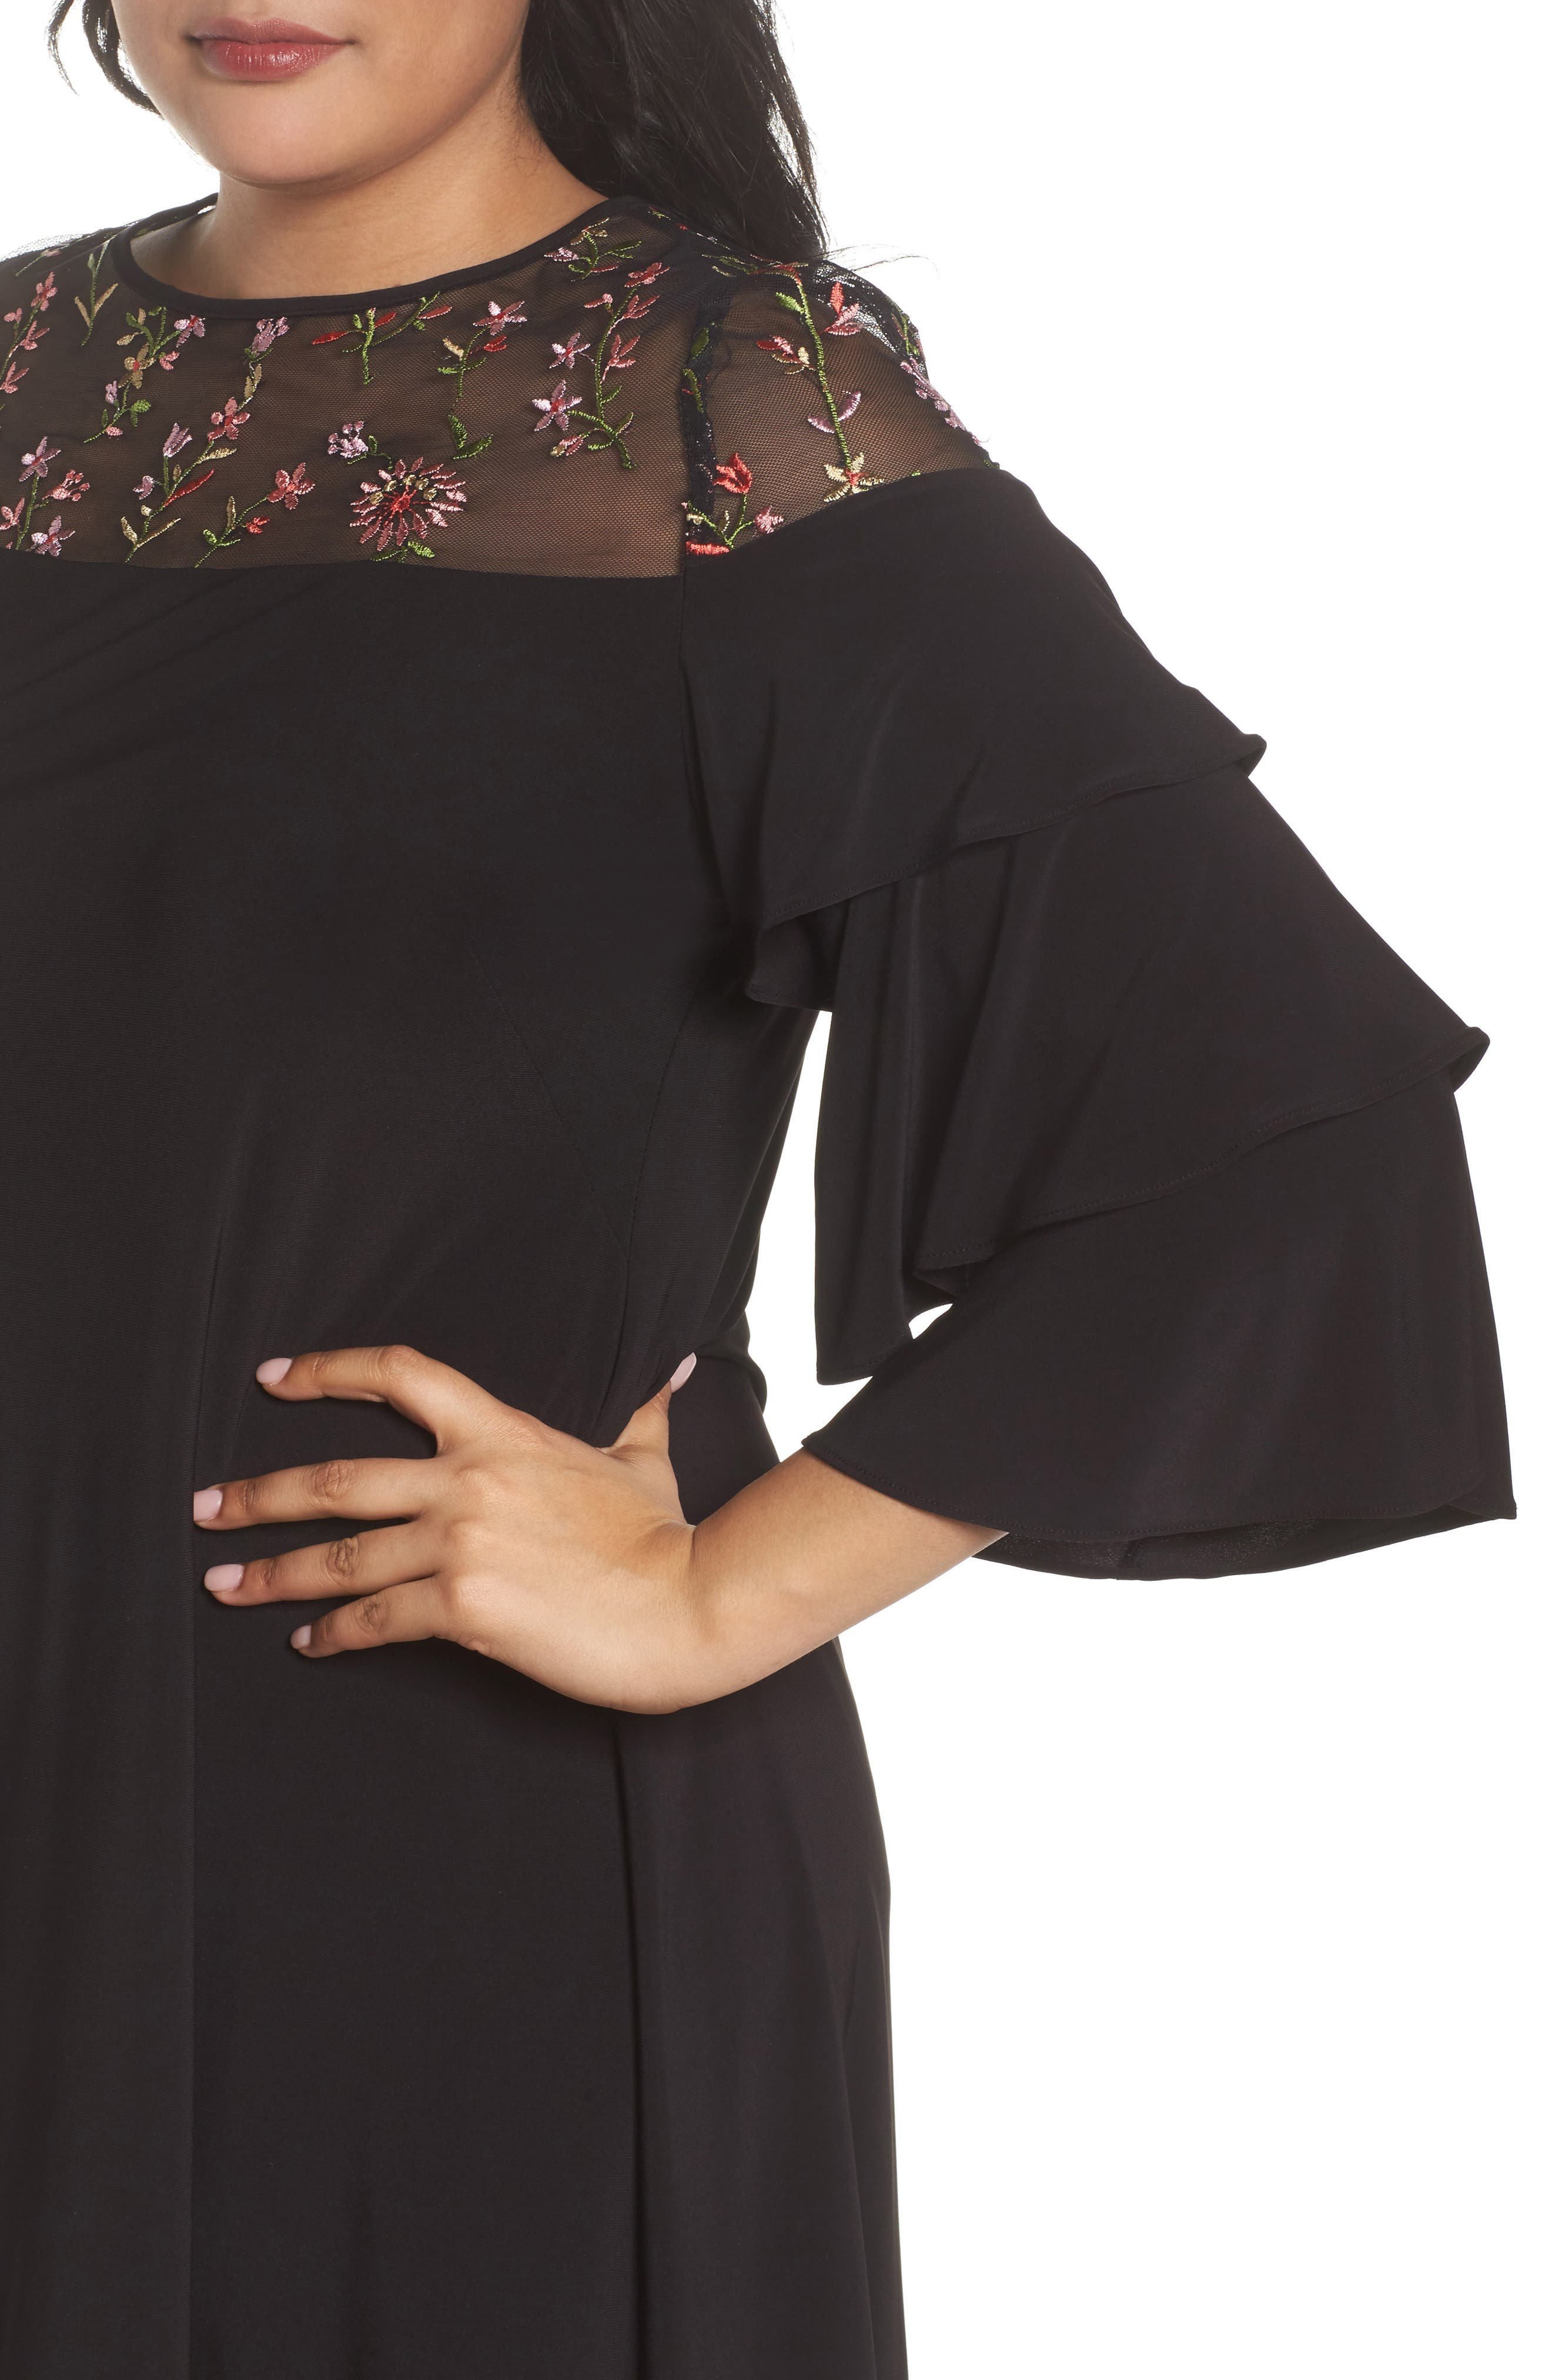 Ruffled Sleeve Embroidered Yoke A-Line Dress,                             Alternate thumbnail 4, color,                             Black/ Coral